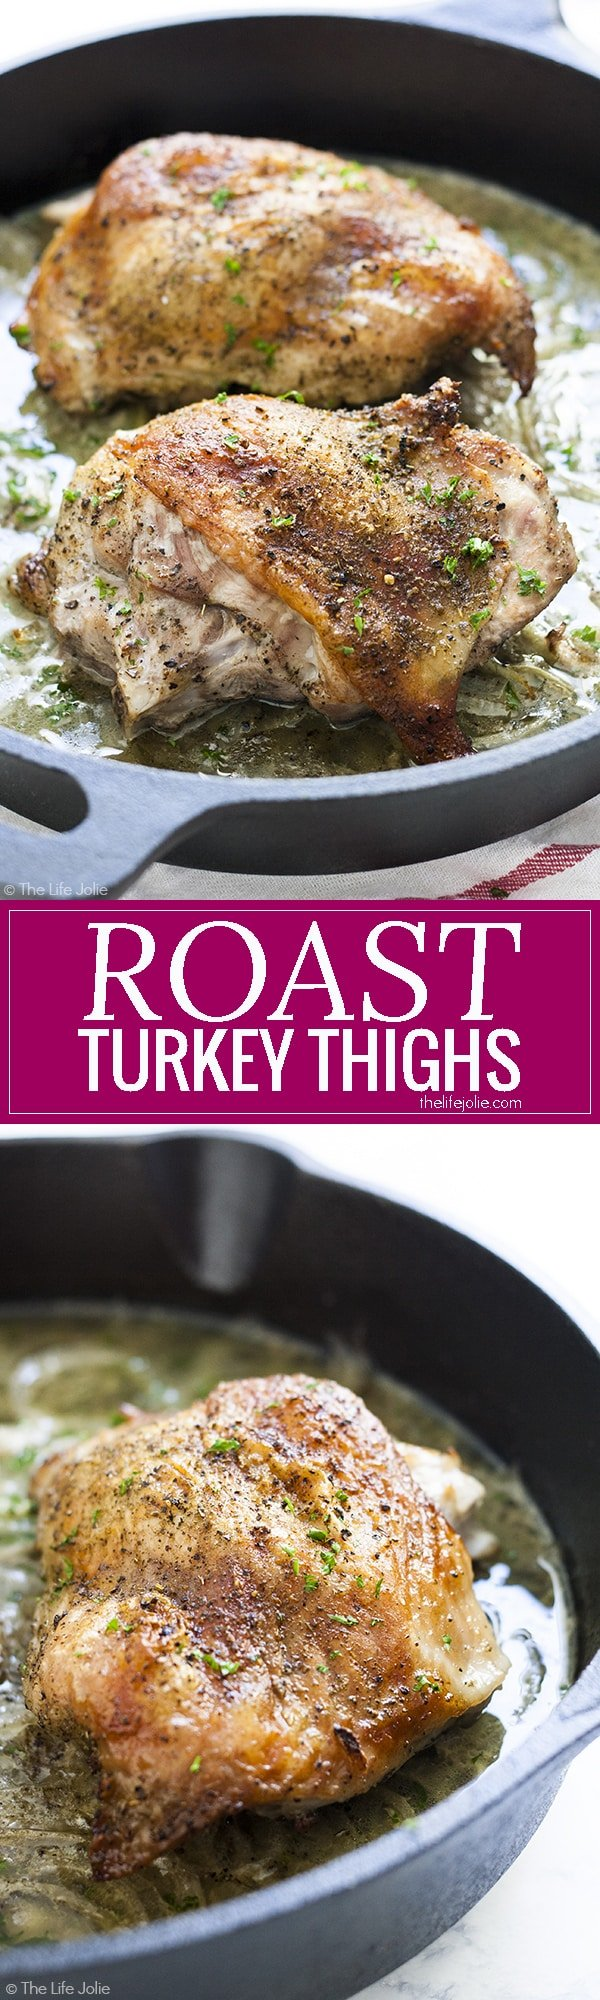 Roast Turkey Thighs for Two is one of my favorite turkey meat recipes. This easy and healthy turkey dish is a great option for tender roasted turkey with crispy skin and minimal dishes for you to wash! This includes simple directions for how to cook this dish- it makes a great alternative for Thanksgiving if you don't want to cook a whole turkey and is also great for other holiday dinners or simple weeknight dinners!